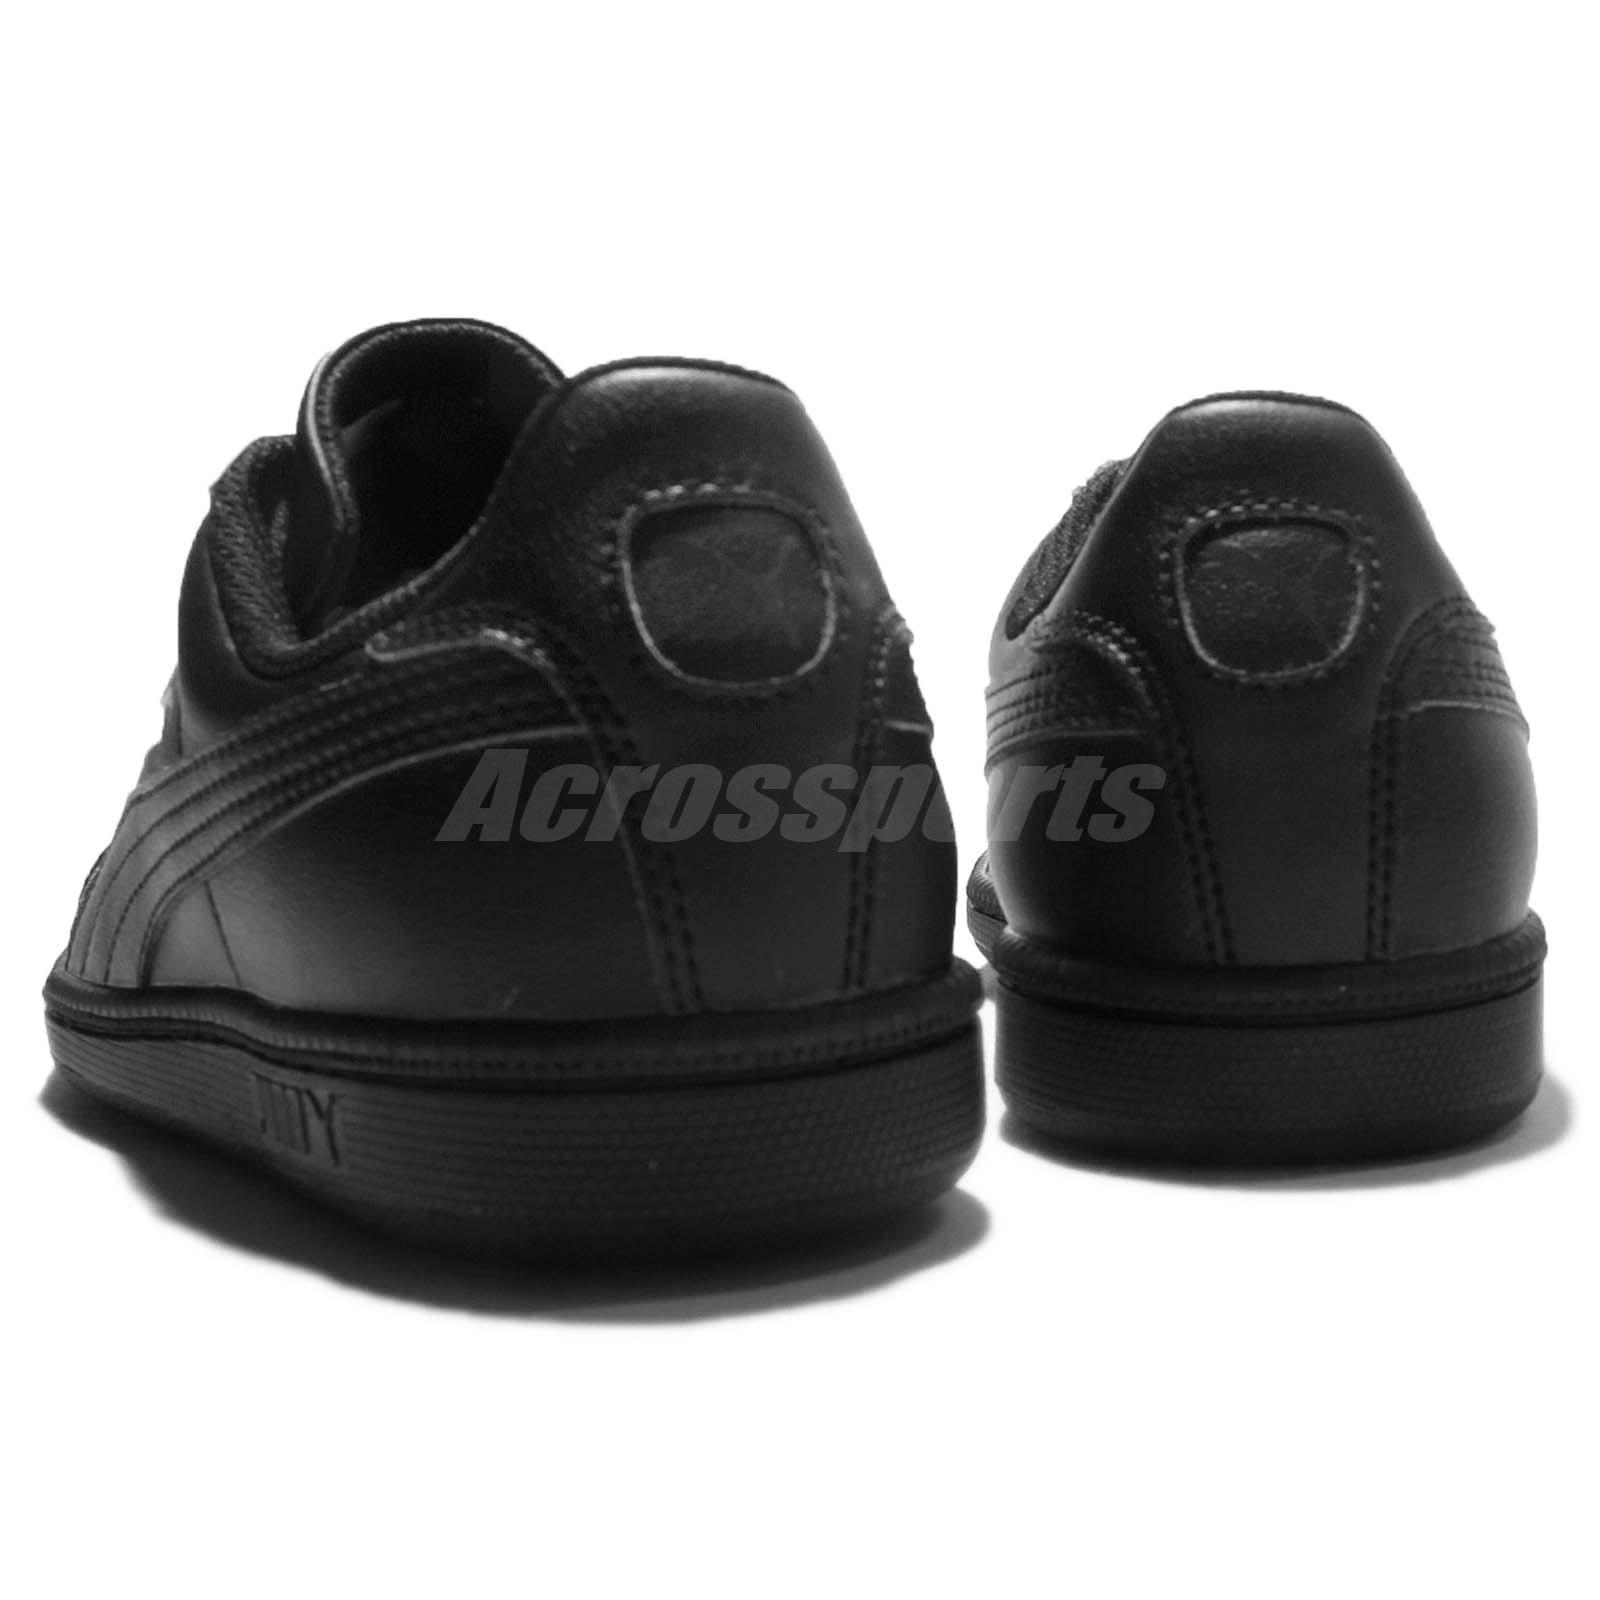 Browse from a variety of sneakers, boots, loafers, dress shoes, and more. Free shipping on all men's designer shoes. Skip main navigation. Search Search Skip to next navigation entry. Shop all New Arrivals Men Women Leather Jackets Black Tie BOSS Suit Guide Suit Separates Golf Collection Made in Germany BOSS Bodywear The Washable Suit.